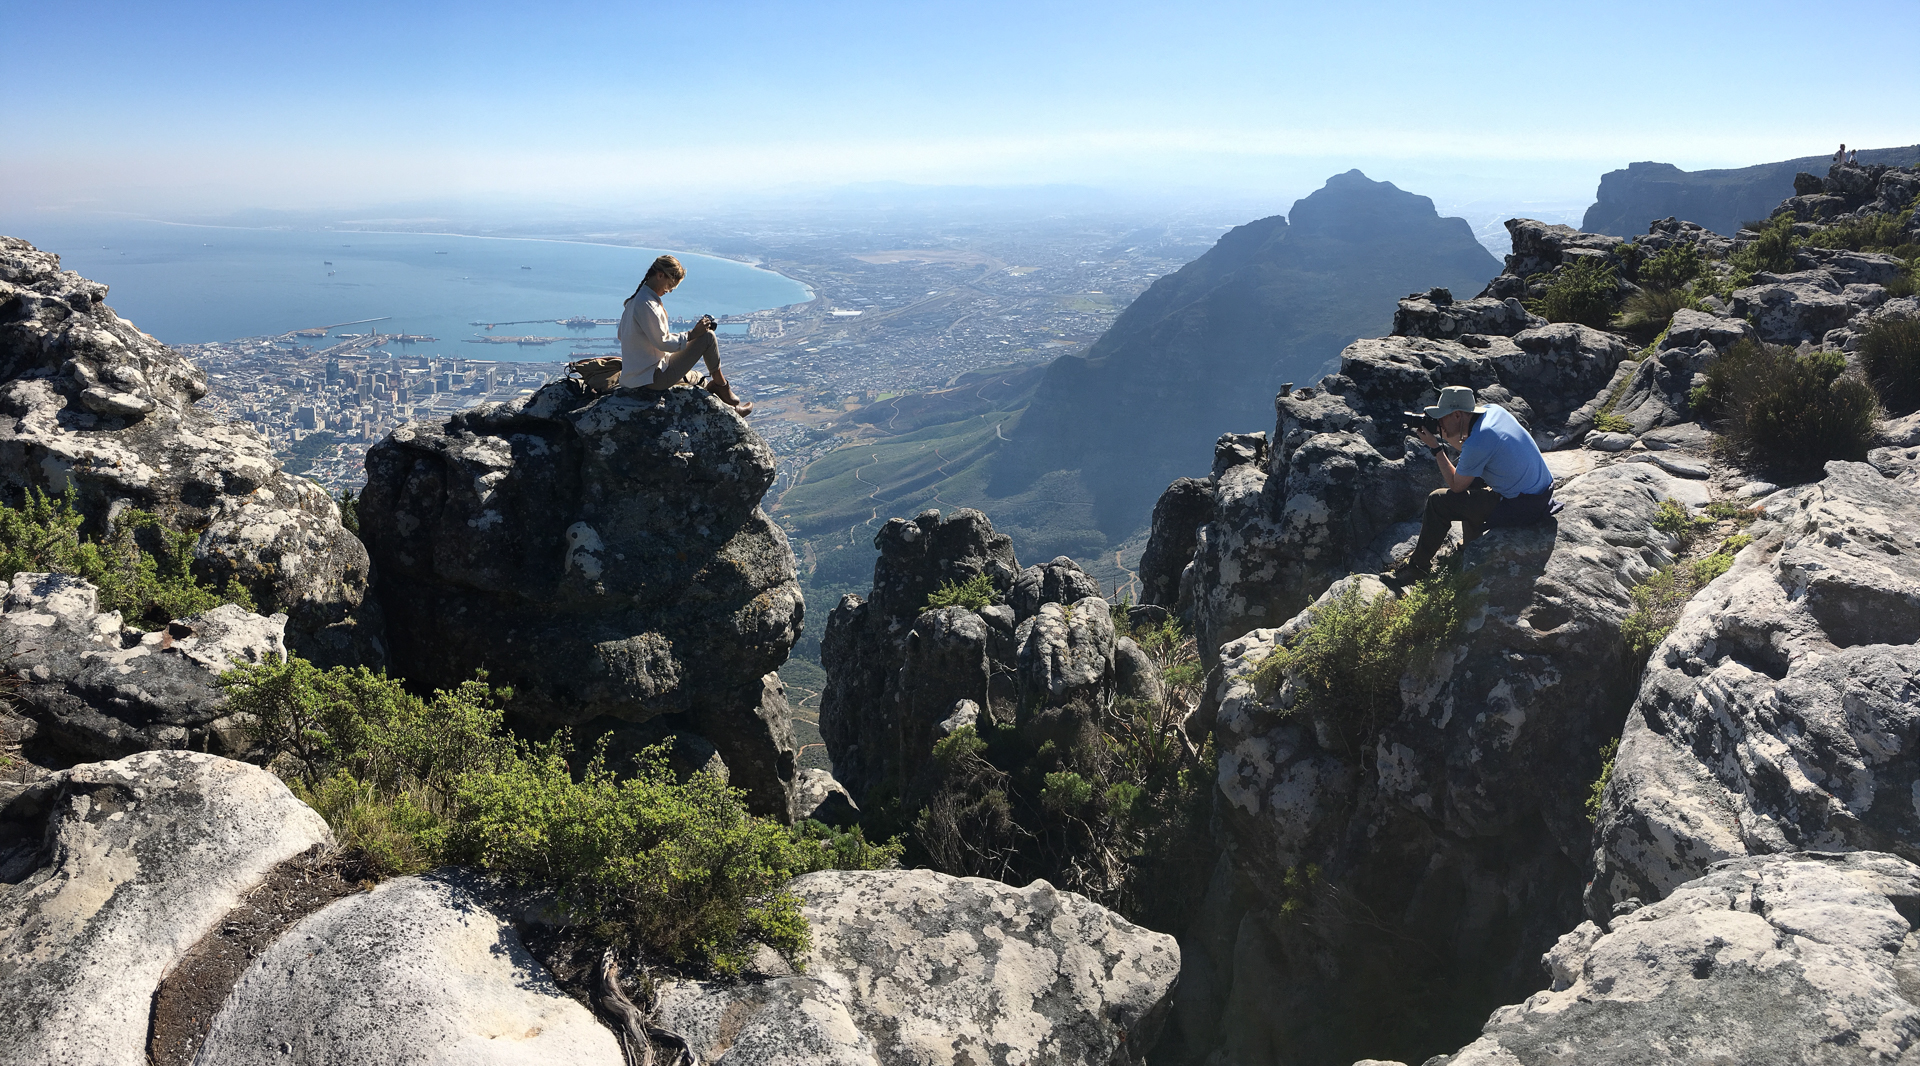 Shooting at Table Mountain